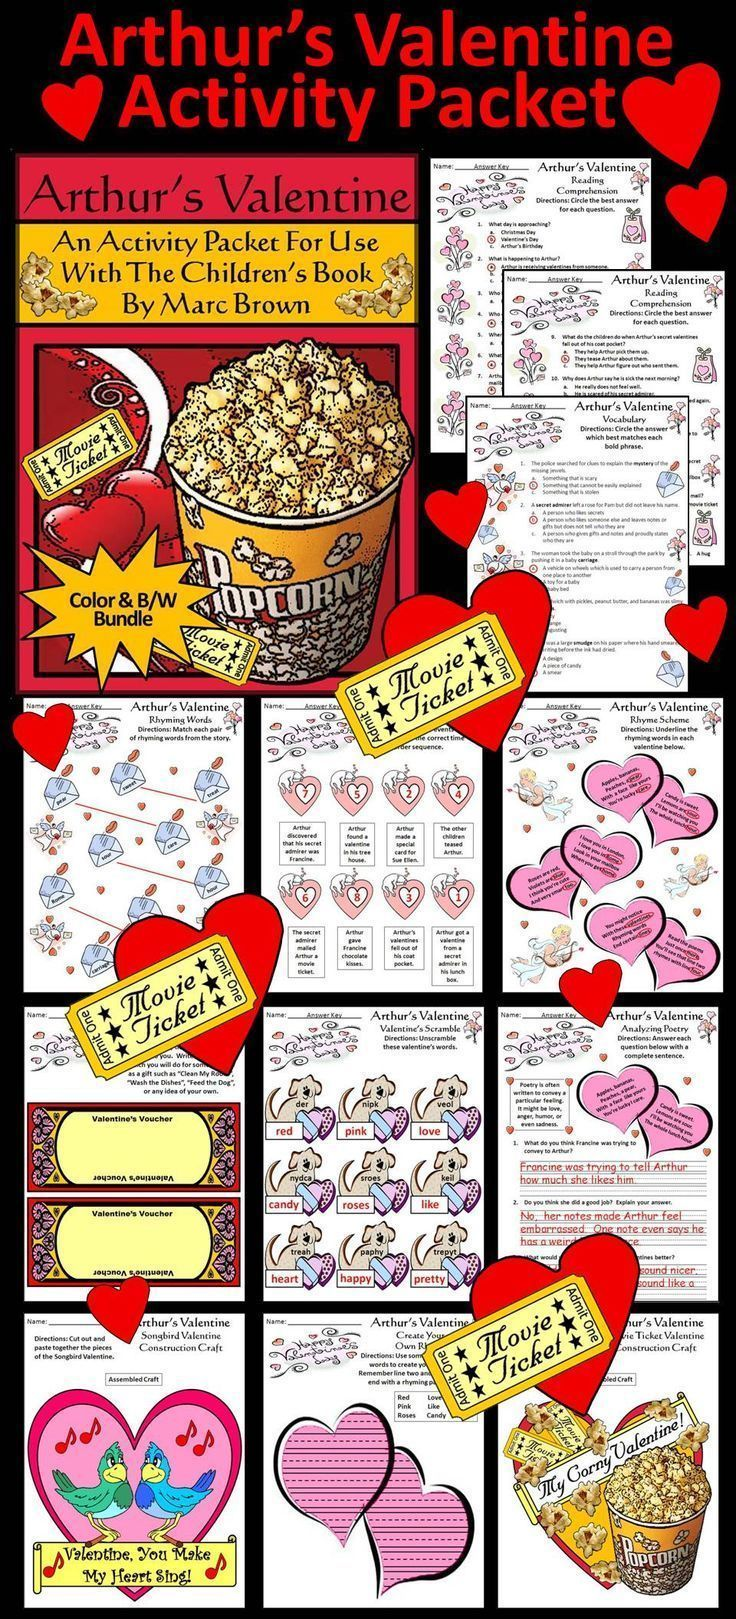 Maths Worksheets For Adults Excel Best  Sequencing Worksheets Ideas On Pinterest  Sequencing  Major Scales Worksheet with Mutation Worksheet High School Excel Arthurs Valentine Activity Packet Activity Packet Complementing The  Childrens Book Arthurs Valentine By Honors Chemistry Worksheets Excel